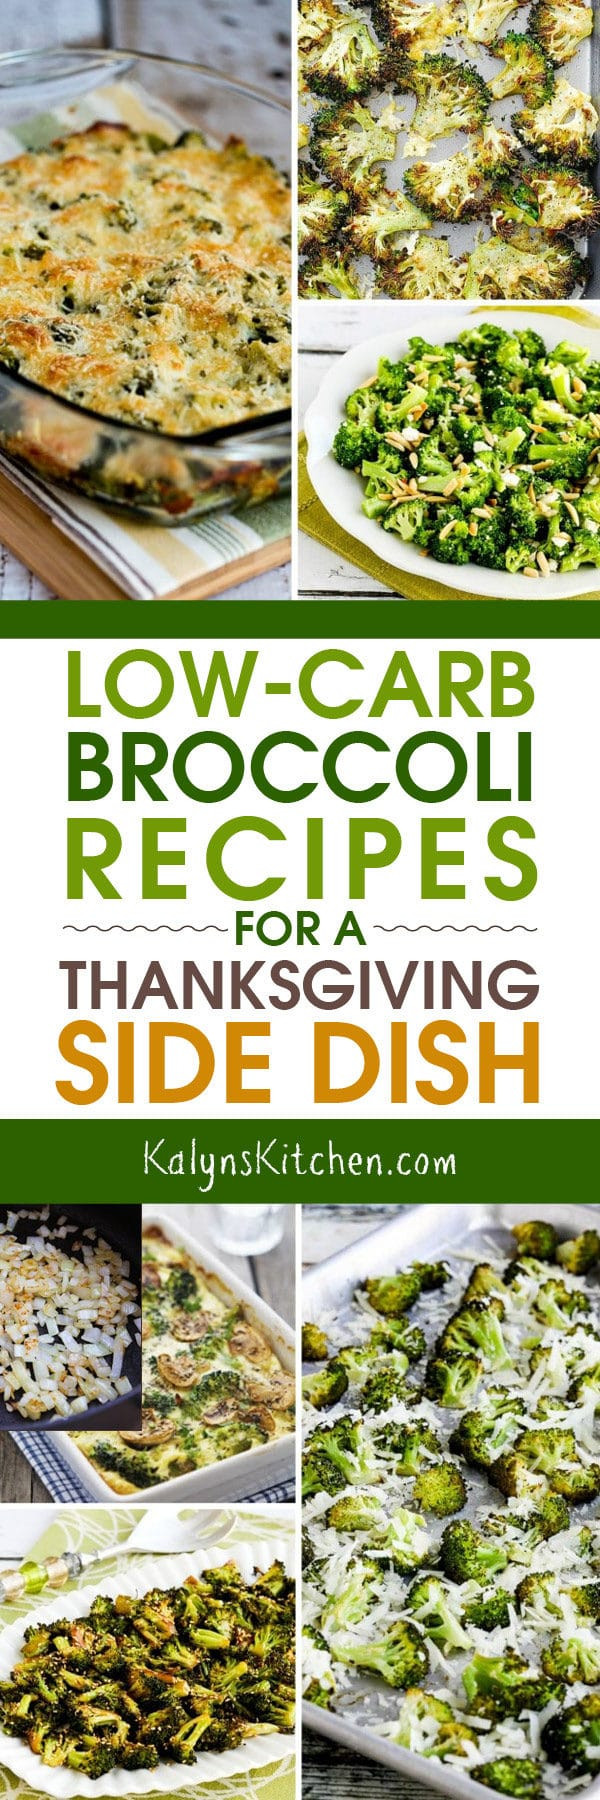 Low Carb Thanksgiving Side Dishes  Low Carb Broccoli Recipes for a Thanksgiving Side Dish